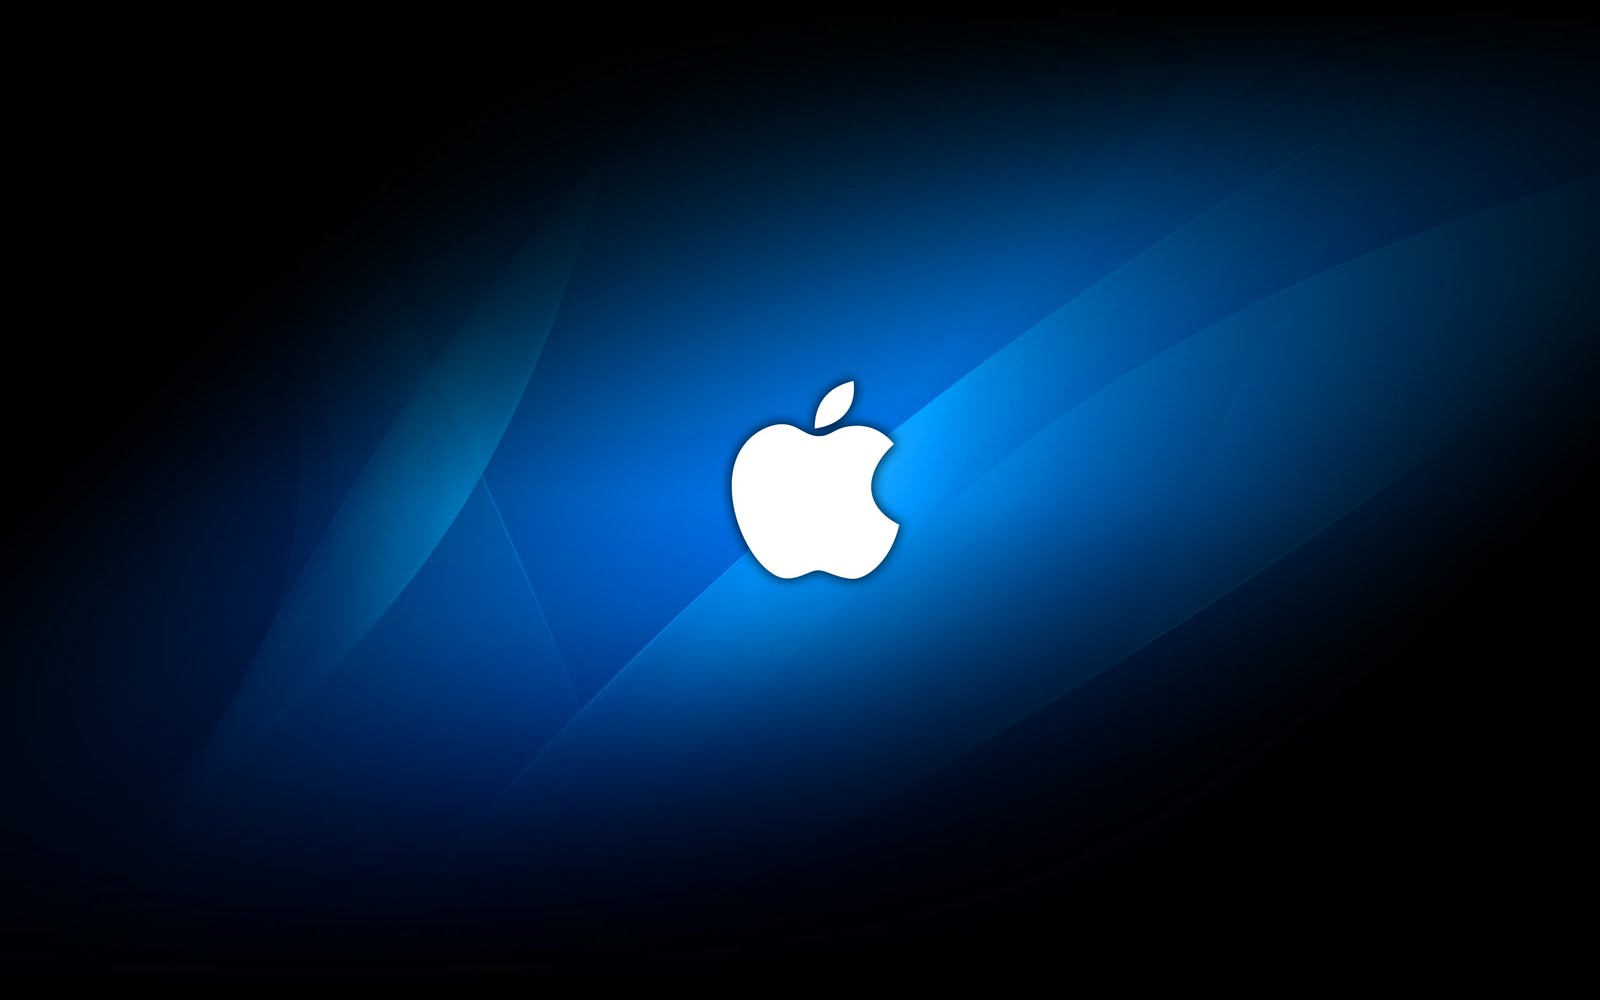 Apple HD Wallpapers Wide Screen Wallapers Of Apple Mac 1600x1000